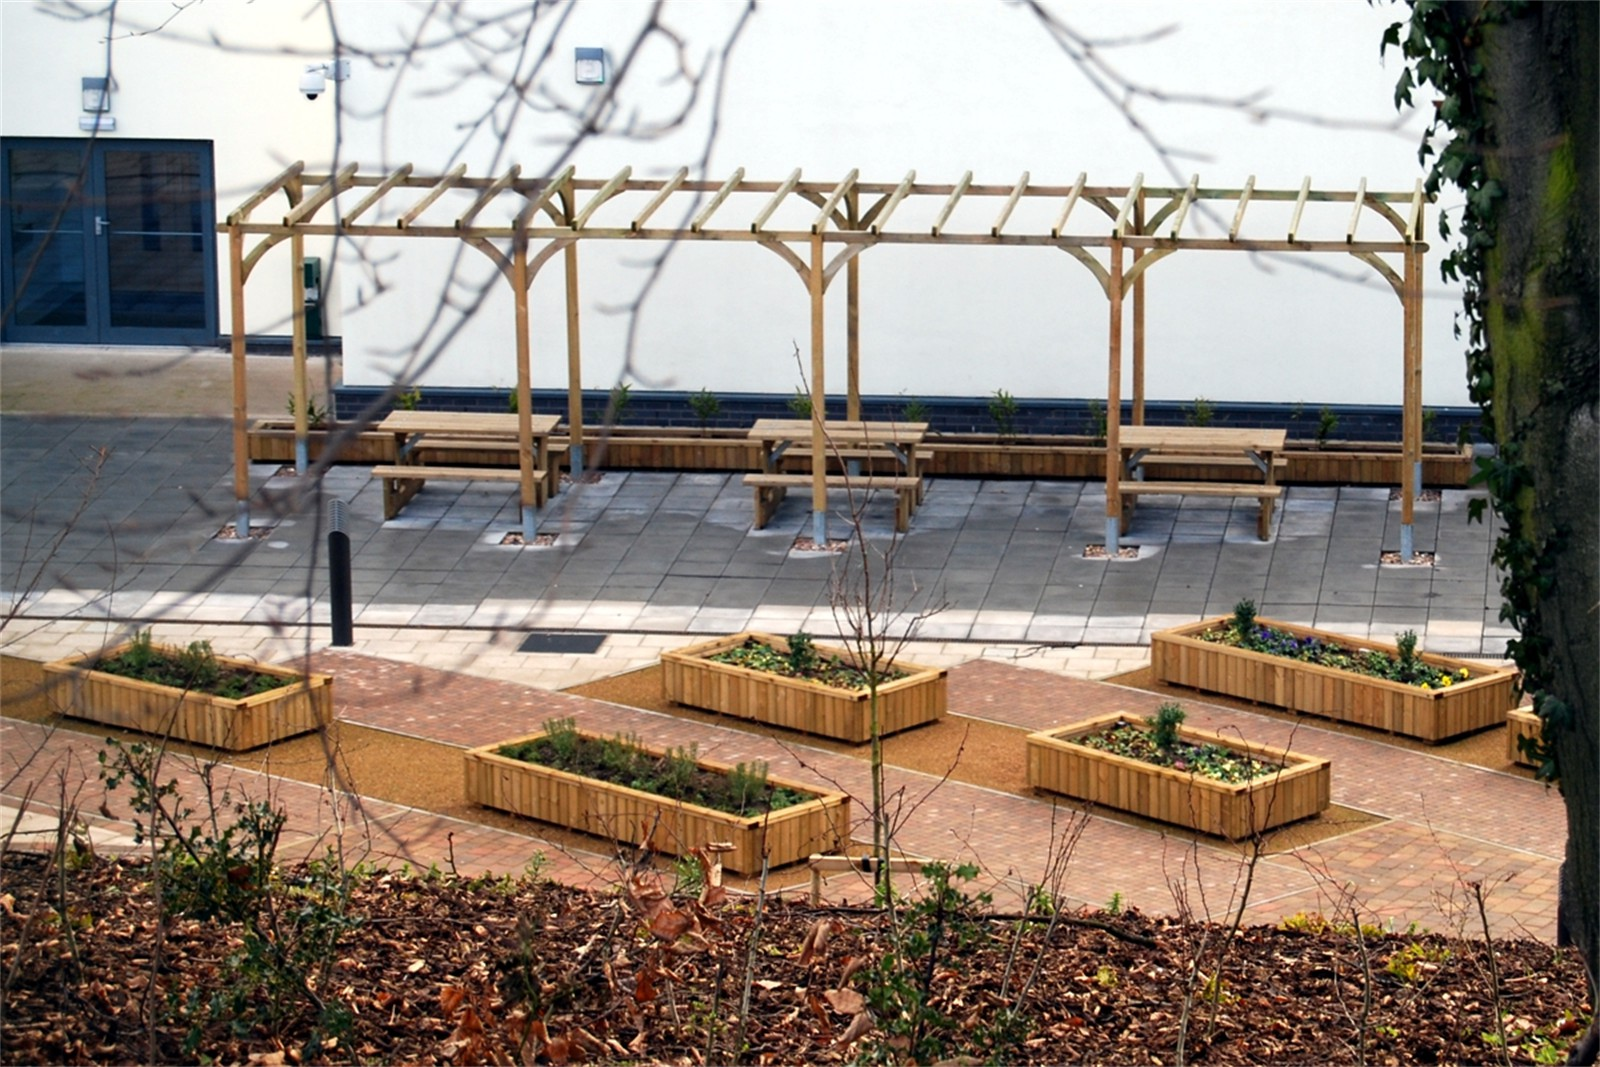 c12304 - Pontefract Hospital, planters, seating and tables